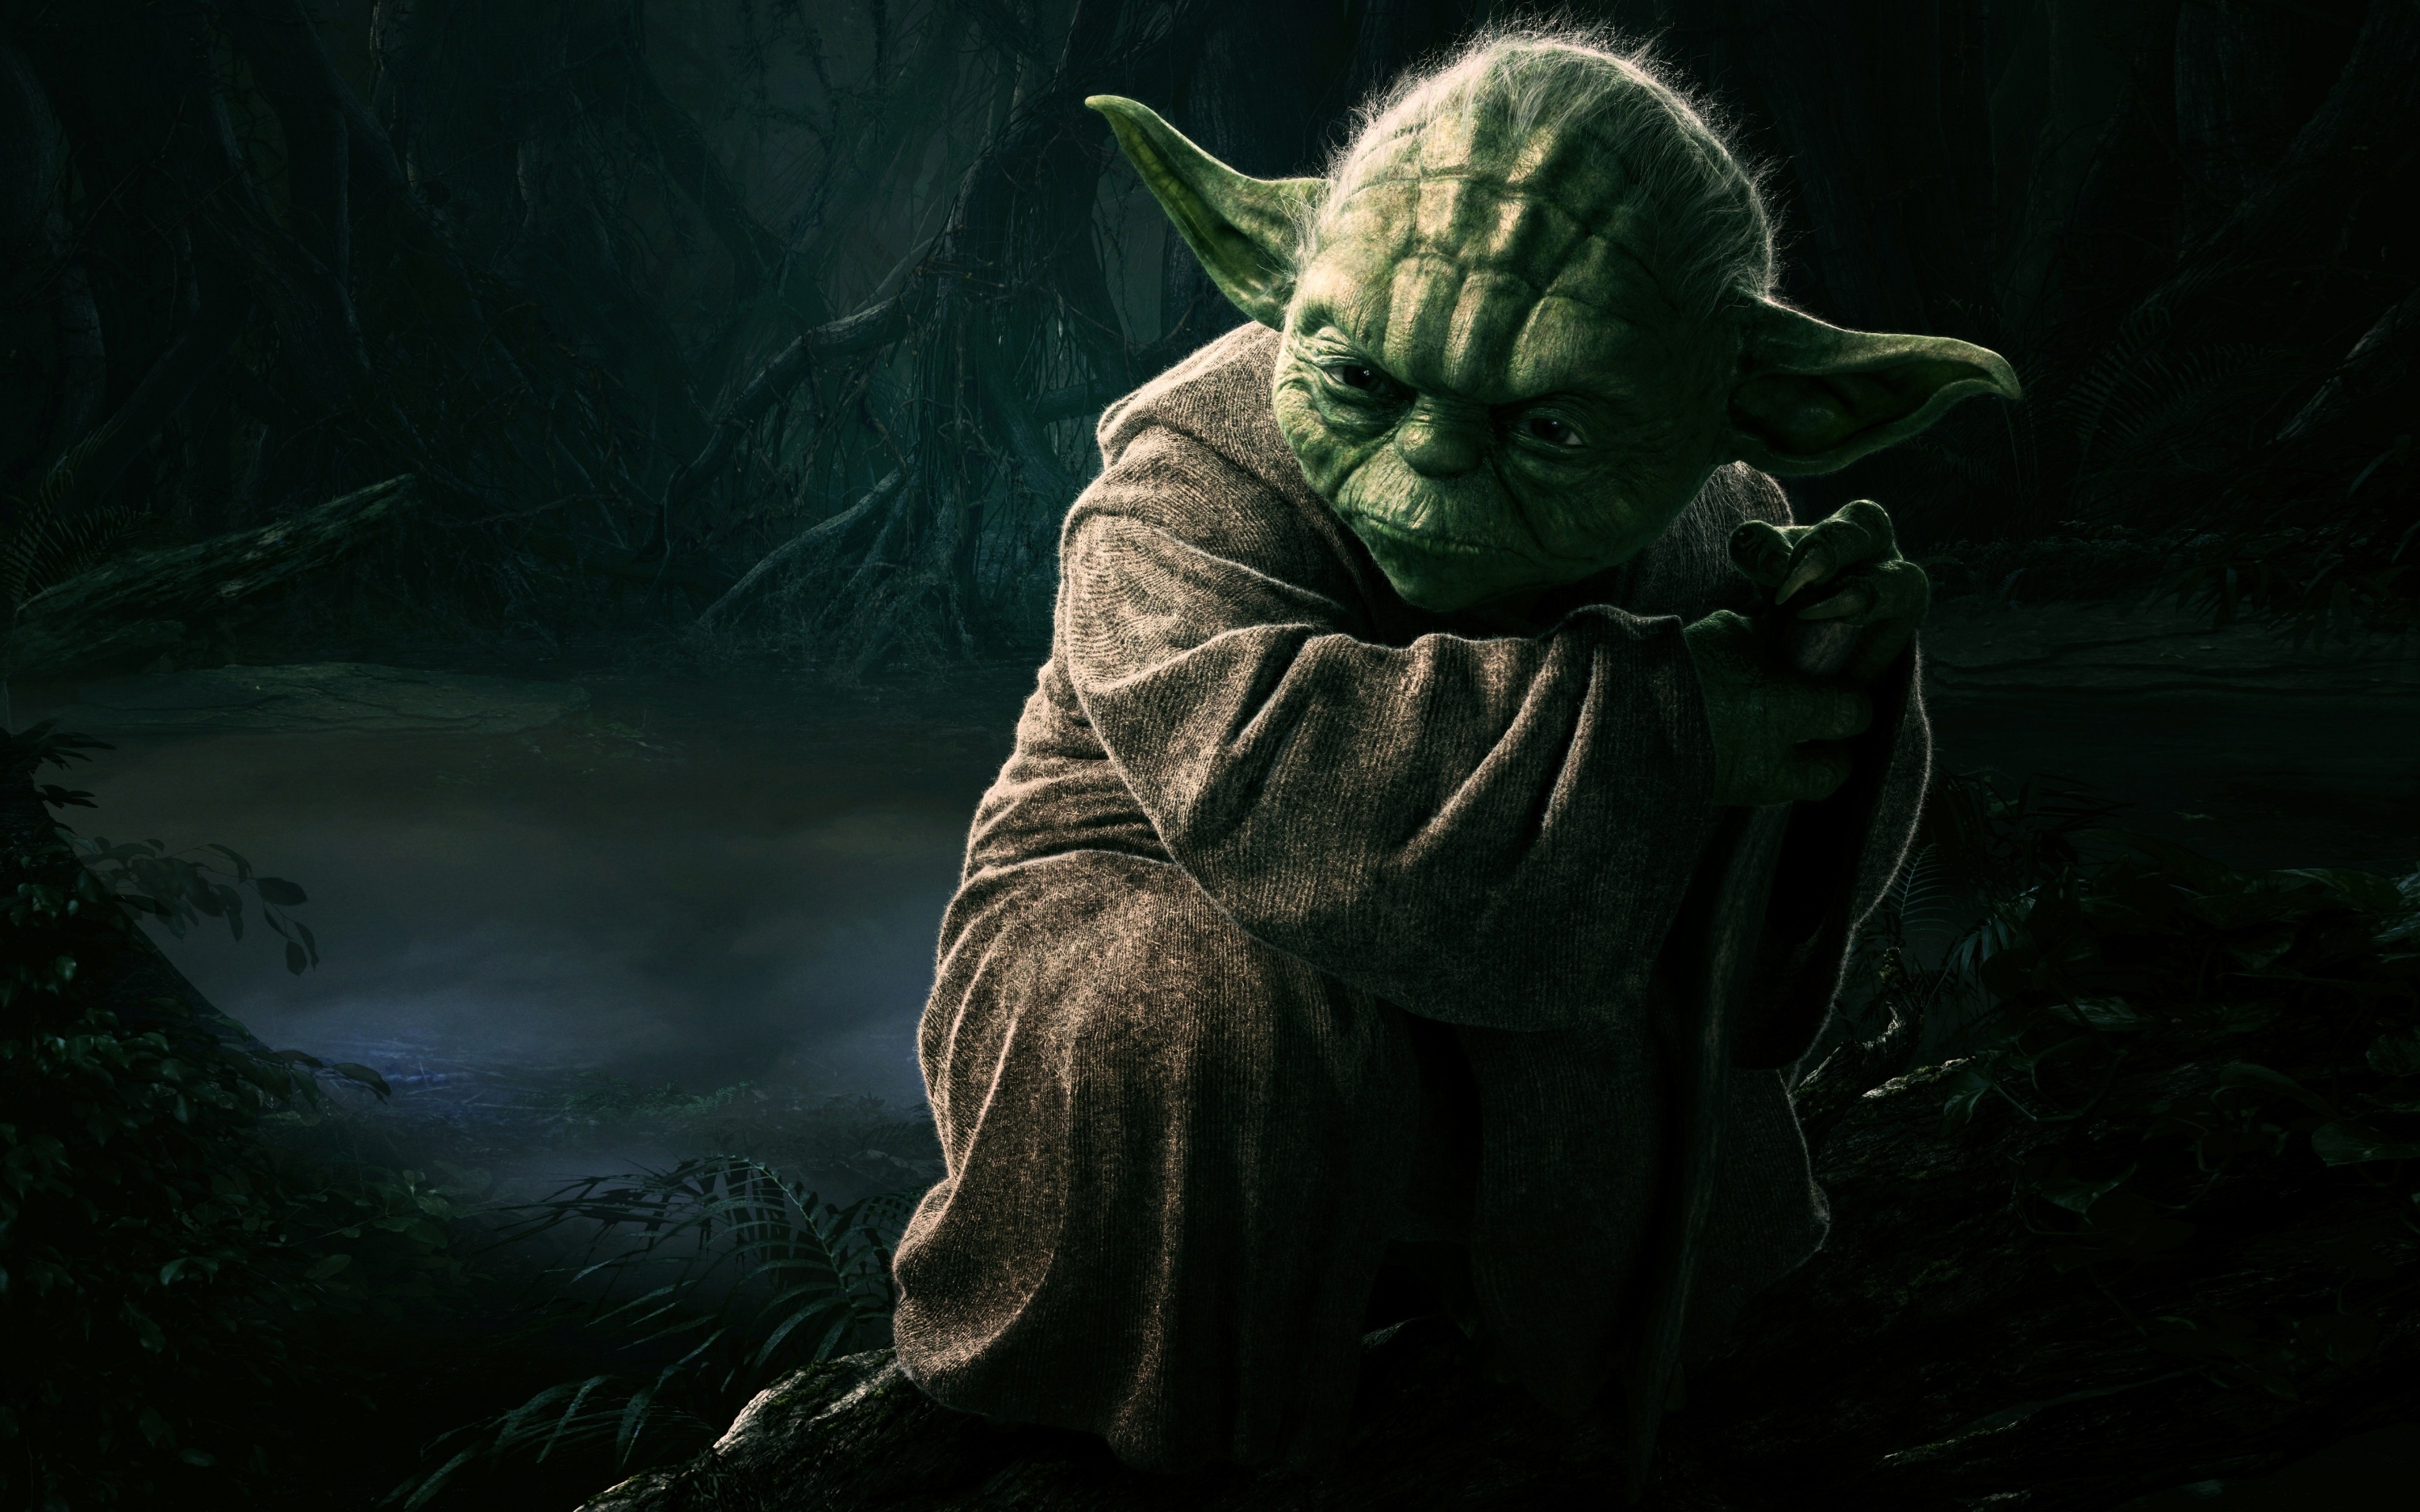 Yoda 1080p Hd Wallpaper 1920×1080 Wallpaper